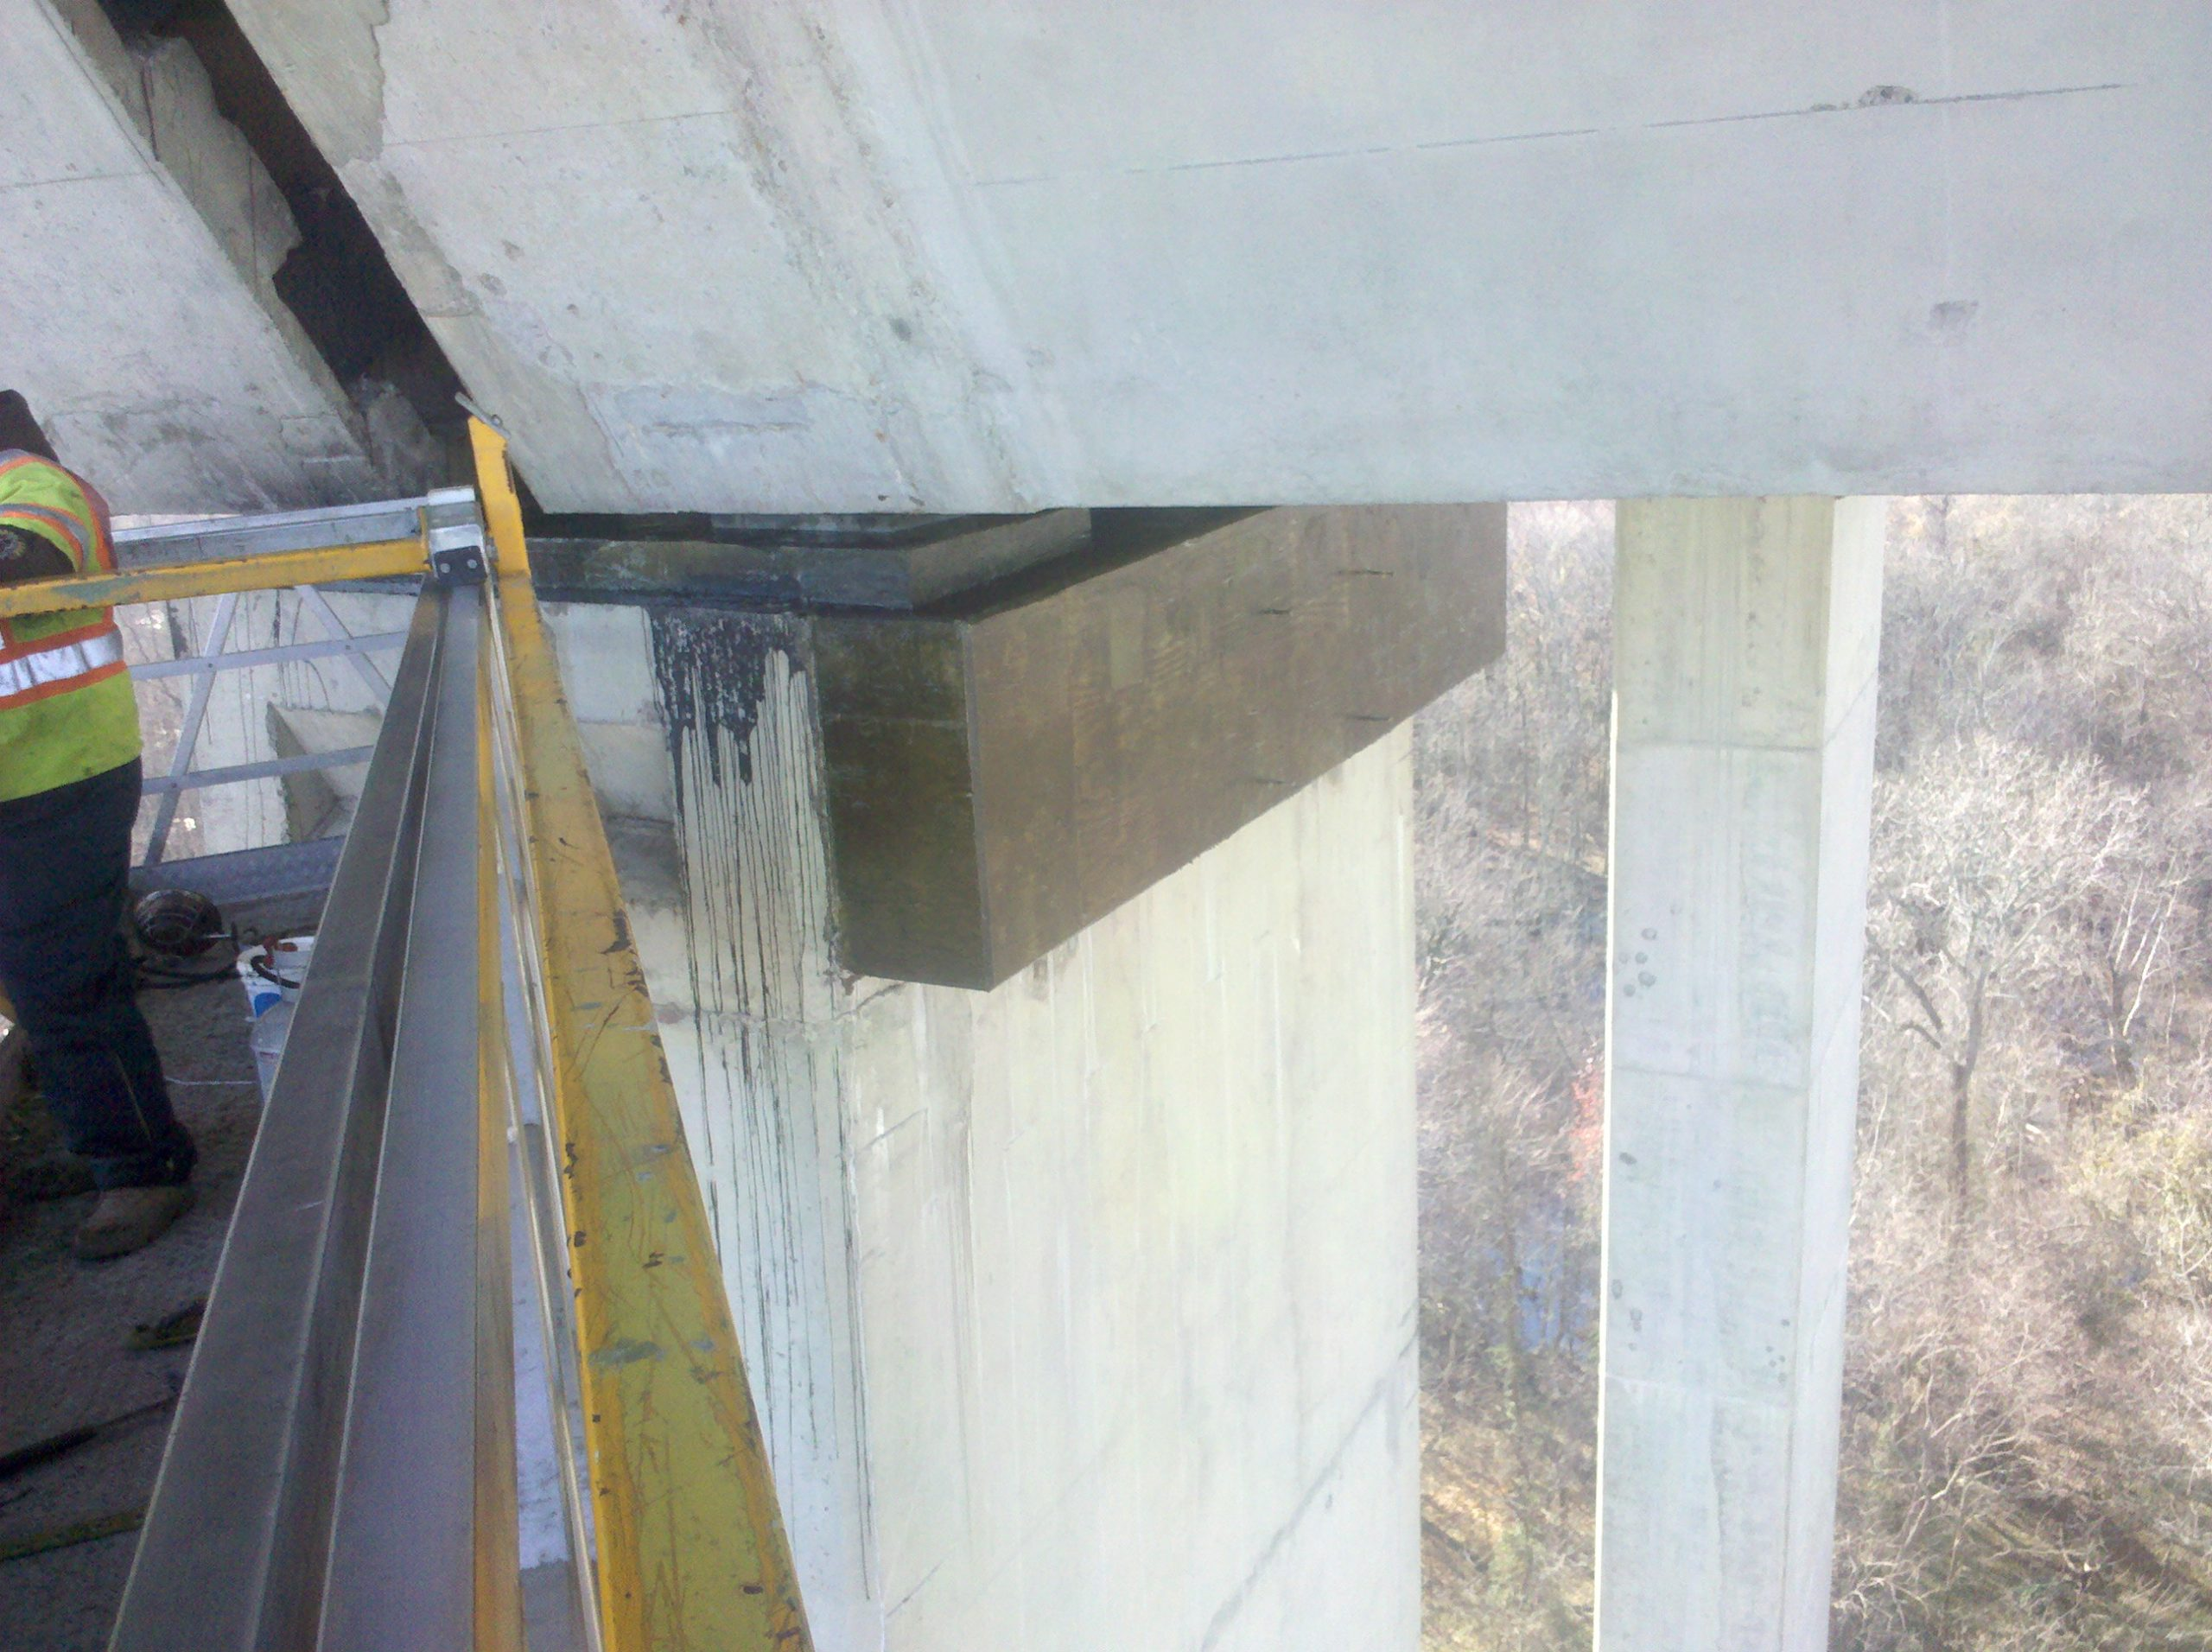 I-295 over the James River-Henrico Co., VA: Pier extension and repair of existing bearings